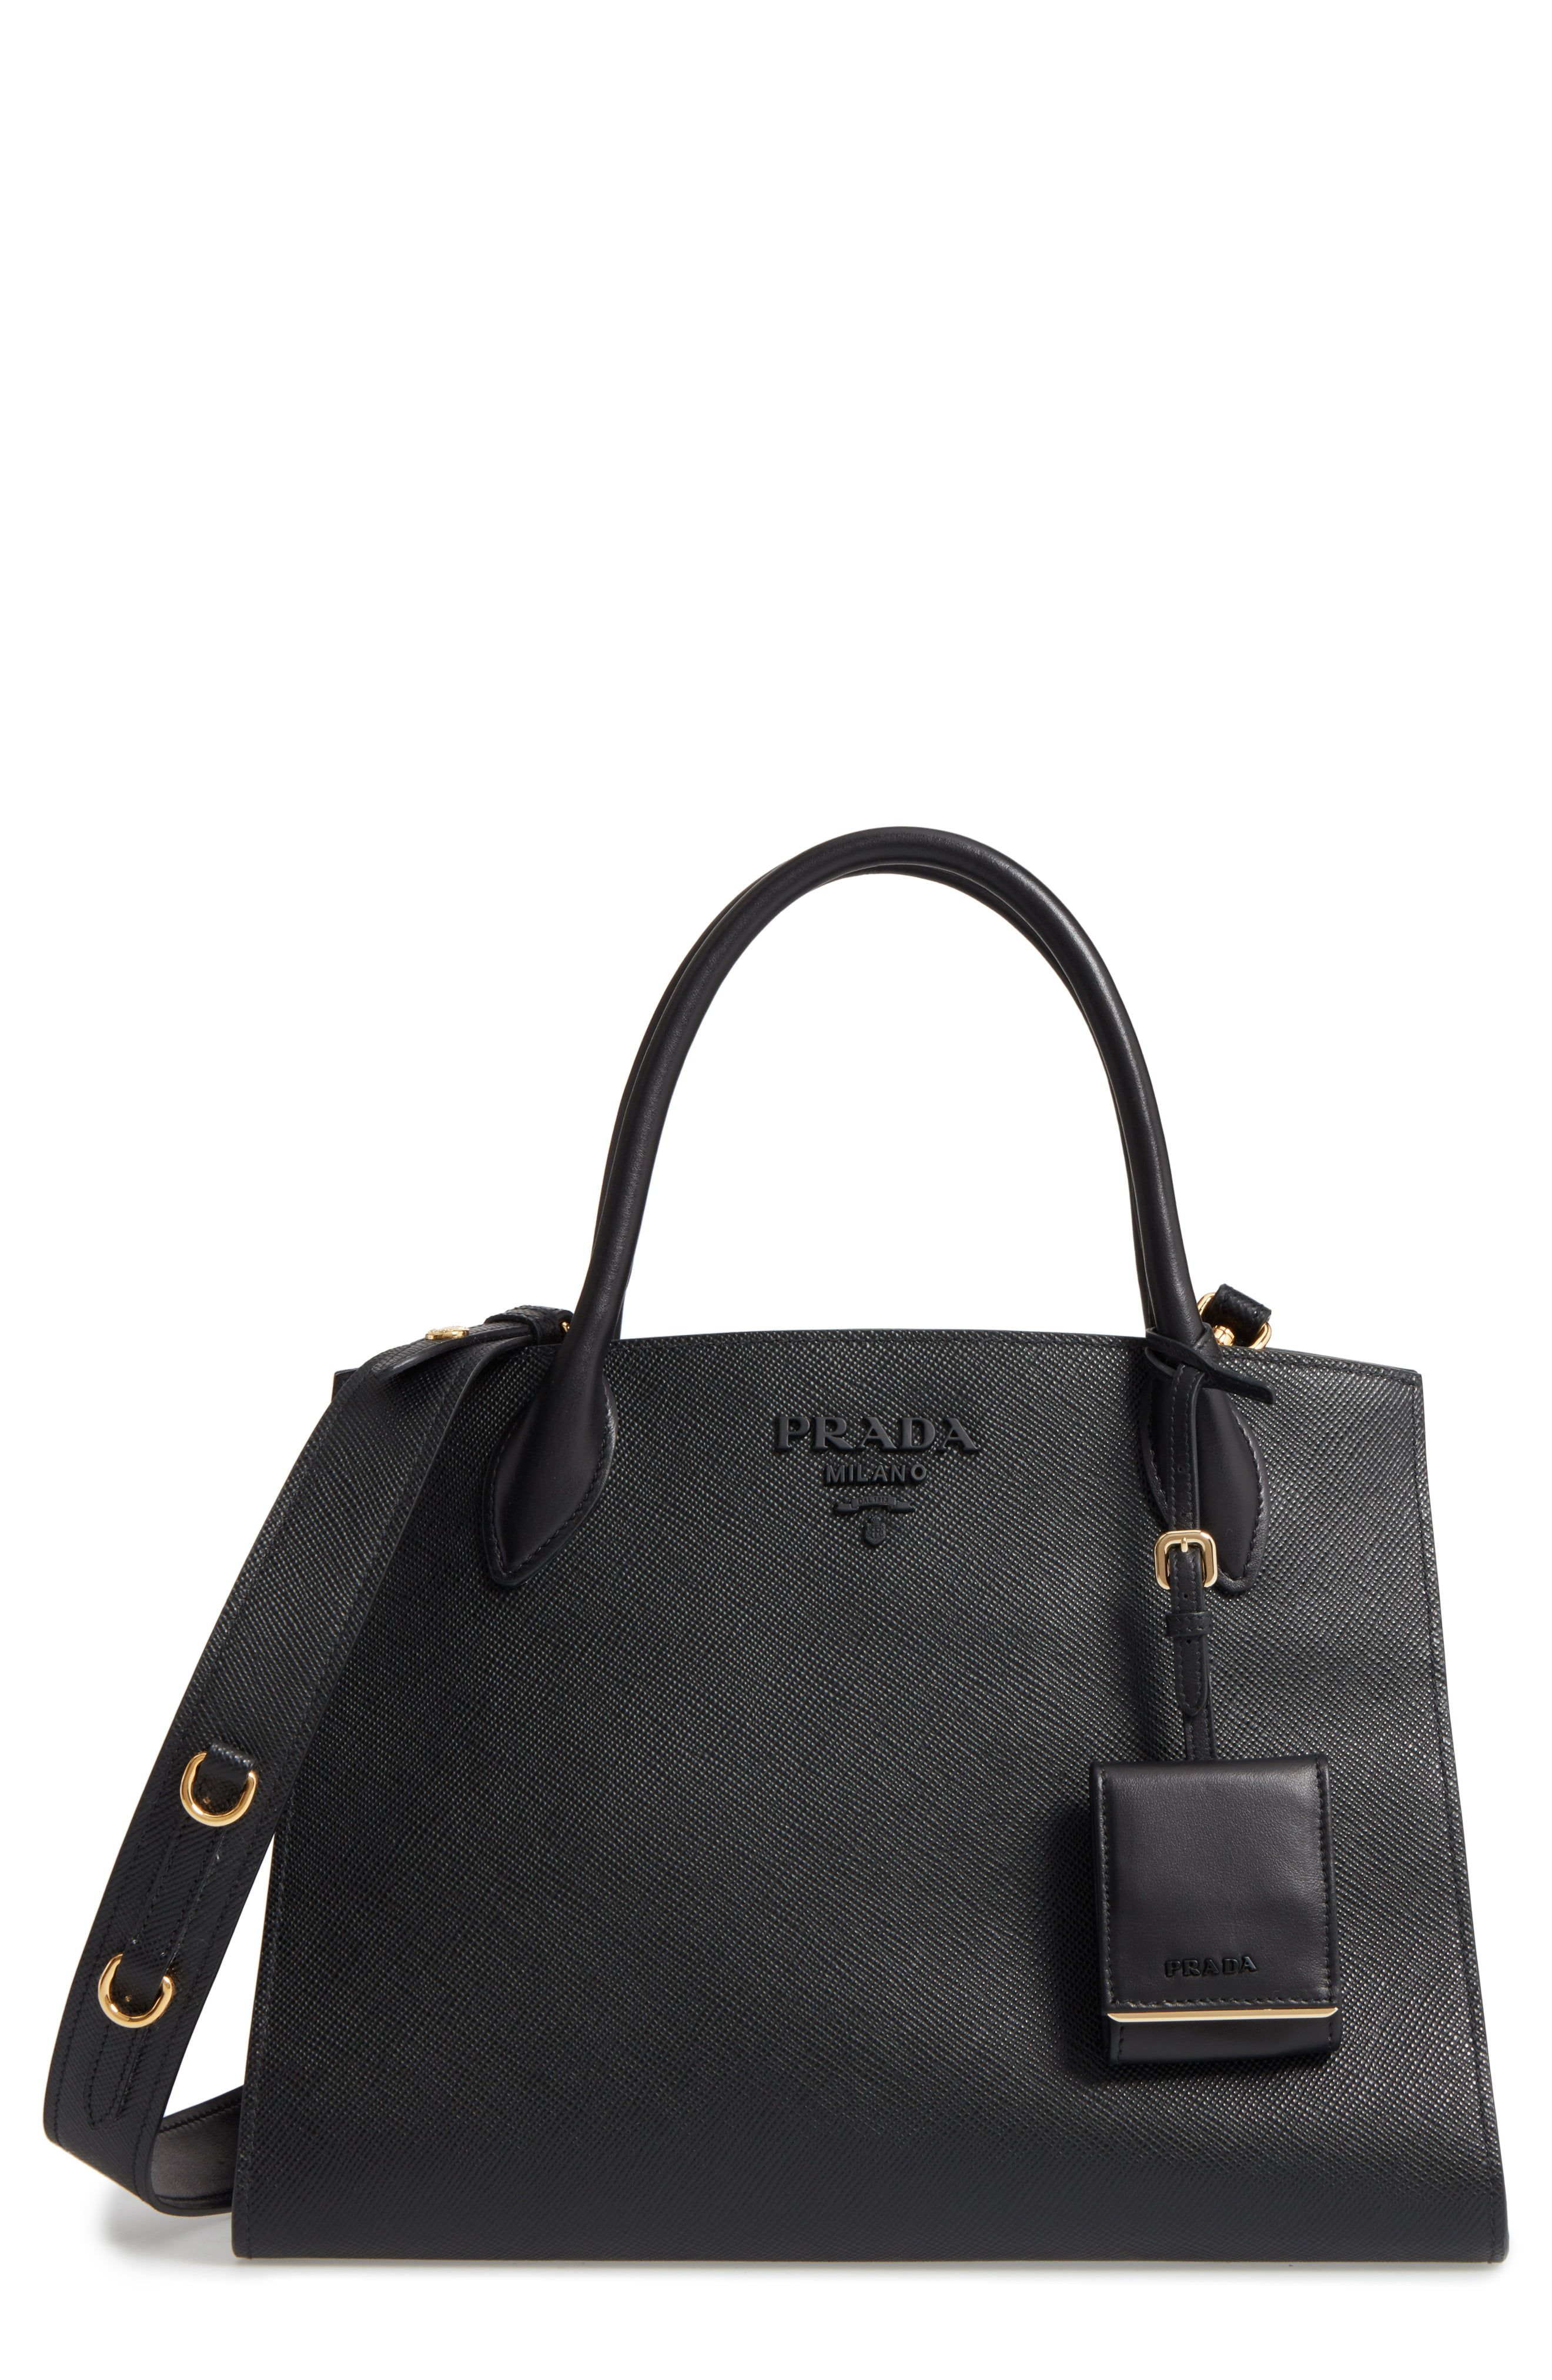 3a3af56cb1584 Prada Large Monochrome Tote in 2019 | Products | Prada, Monochrome, Bags